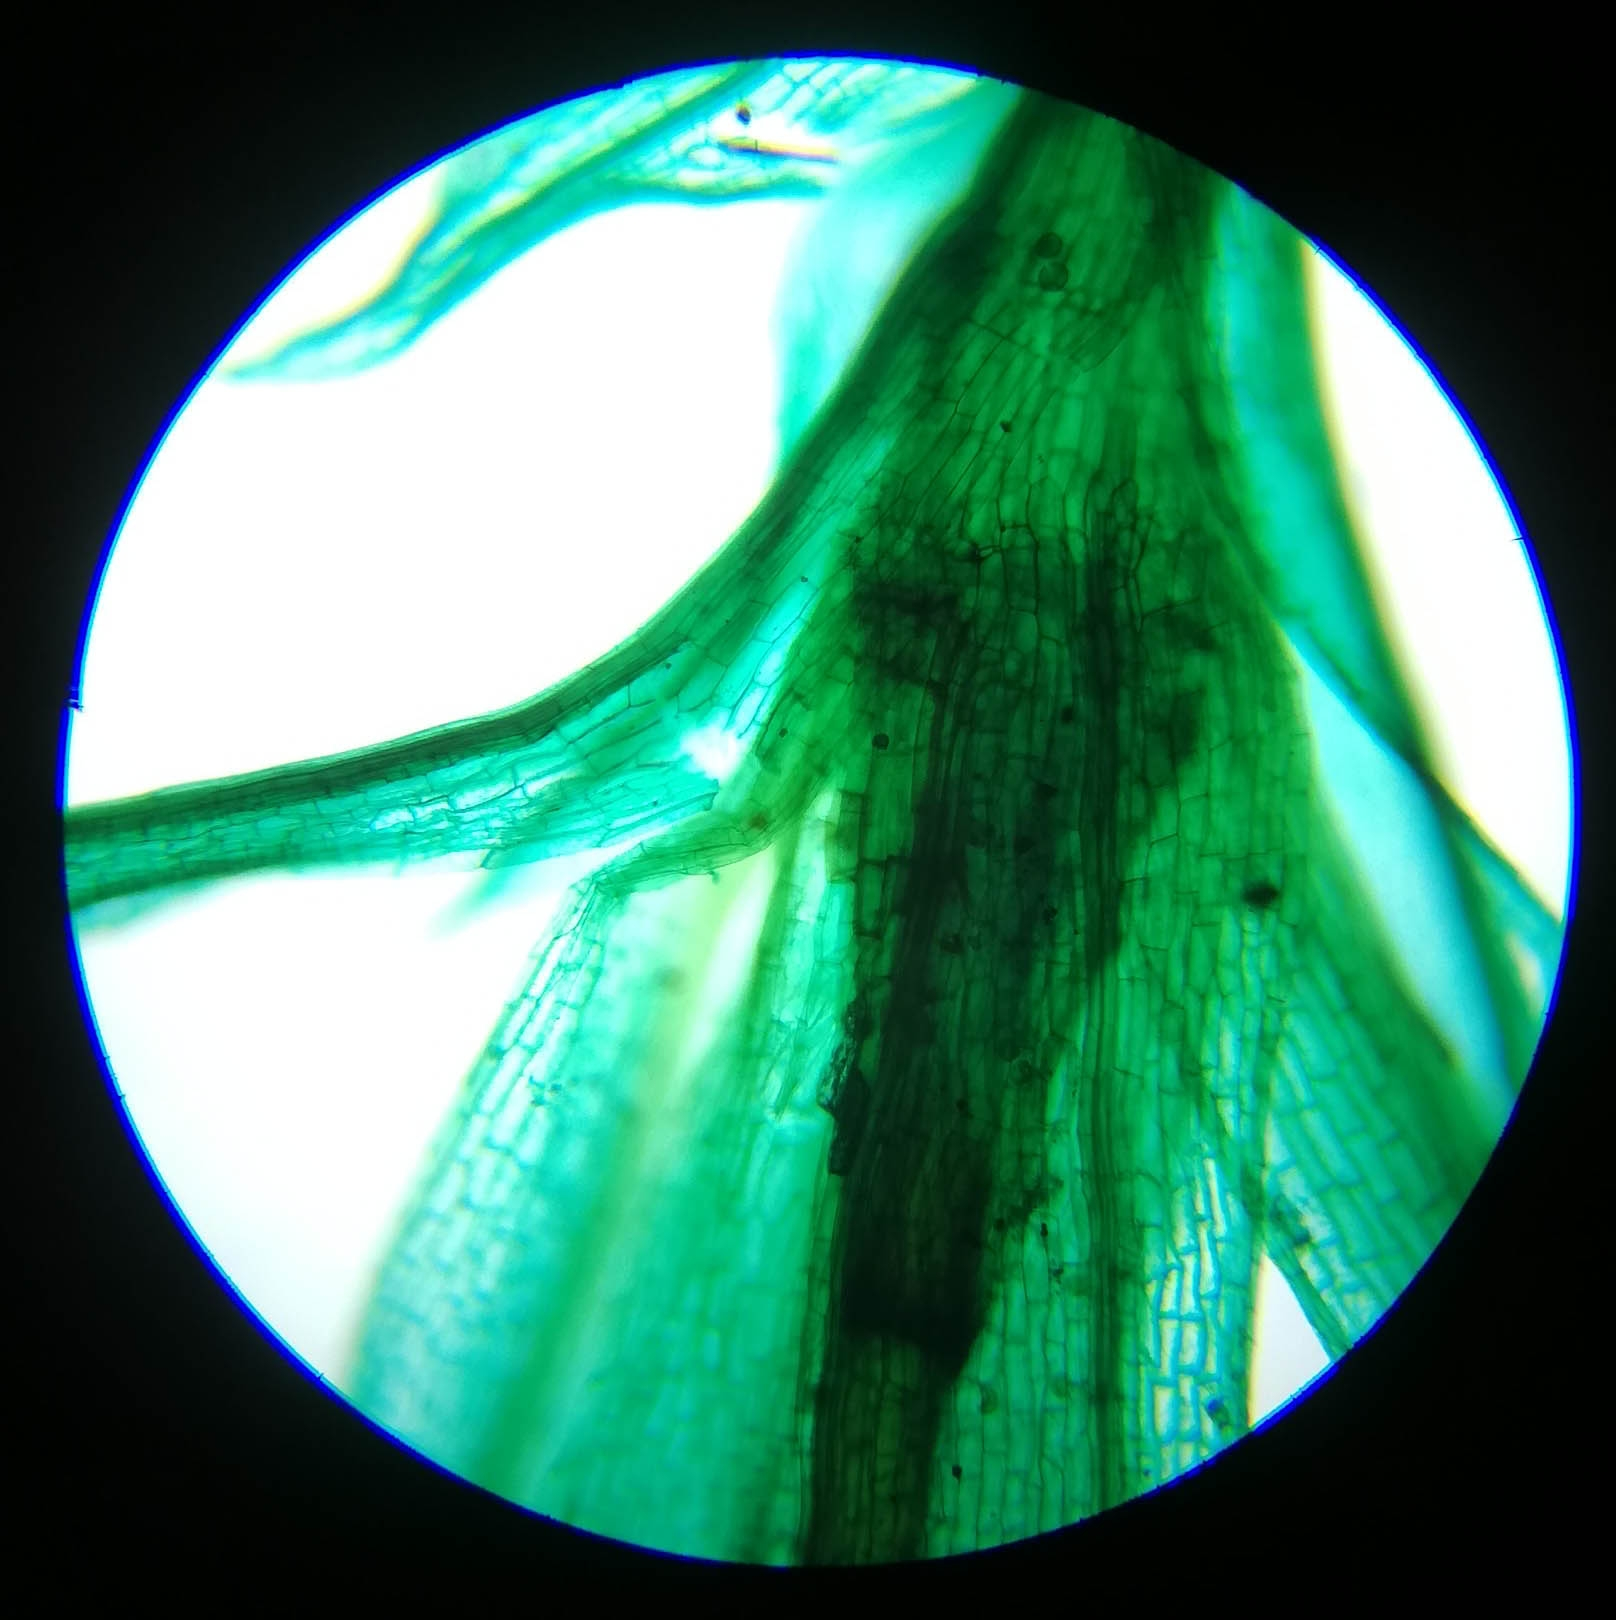 Fern Young Sporophyte W.M #1 - 100x magnification